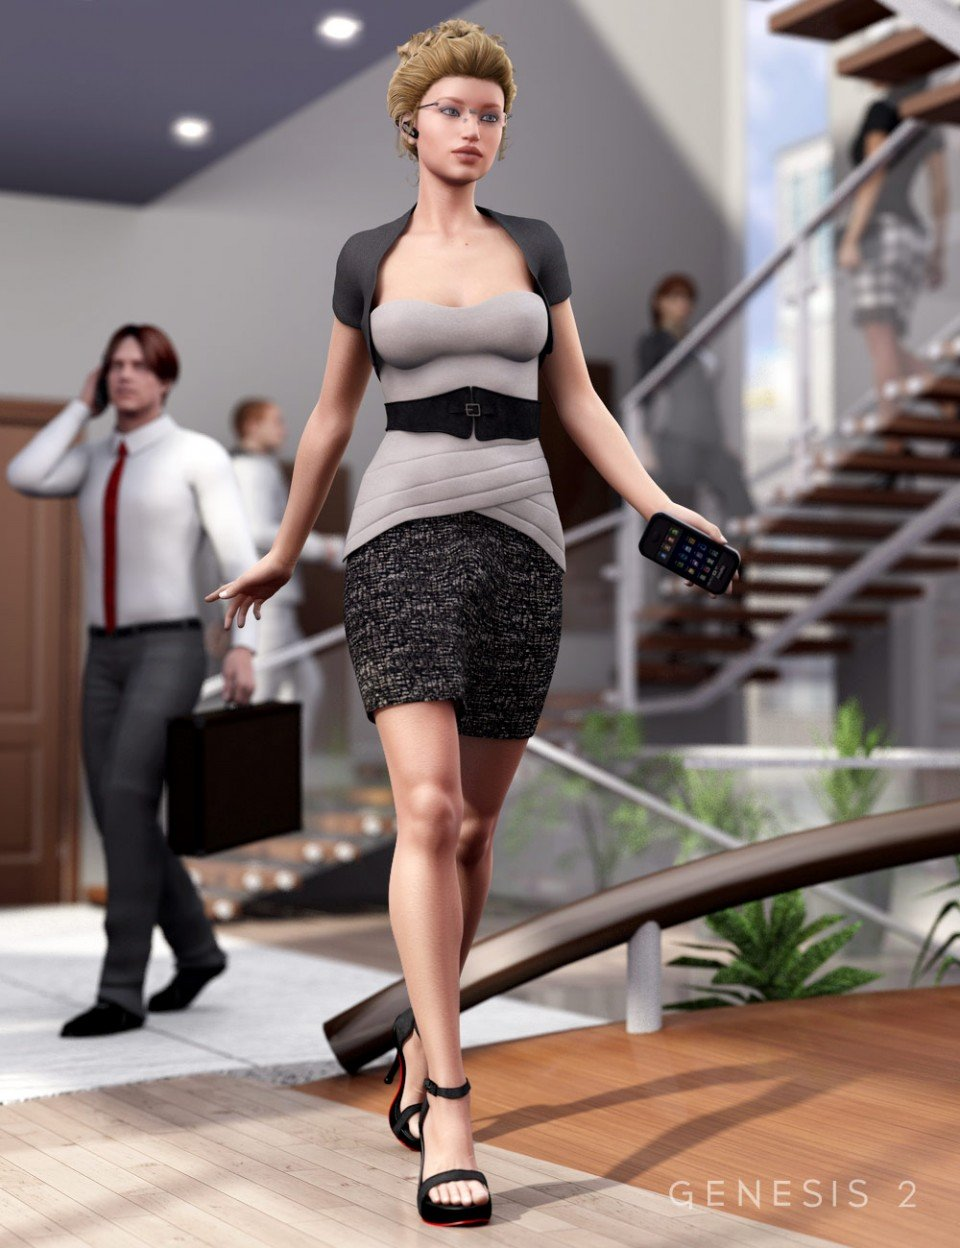 Back to Business Outfit for Genesis 2 Female(s) + Textures_DAZ3D下载站